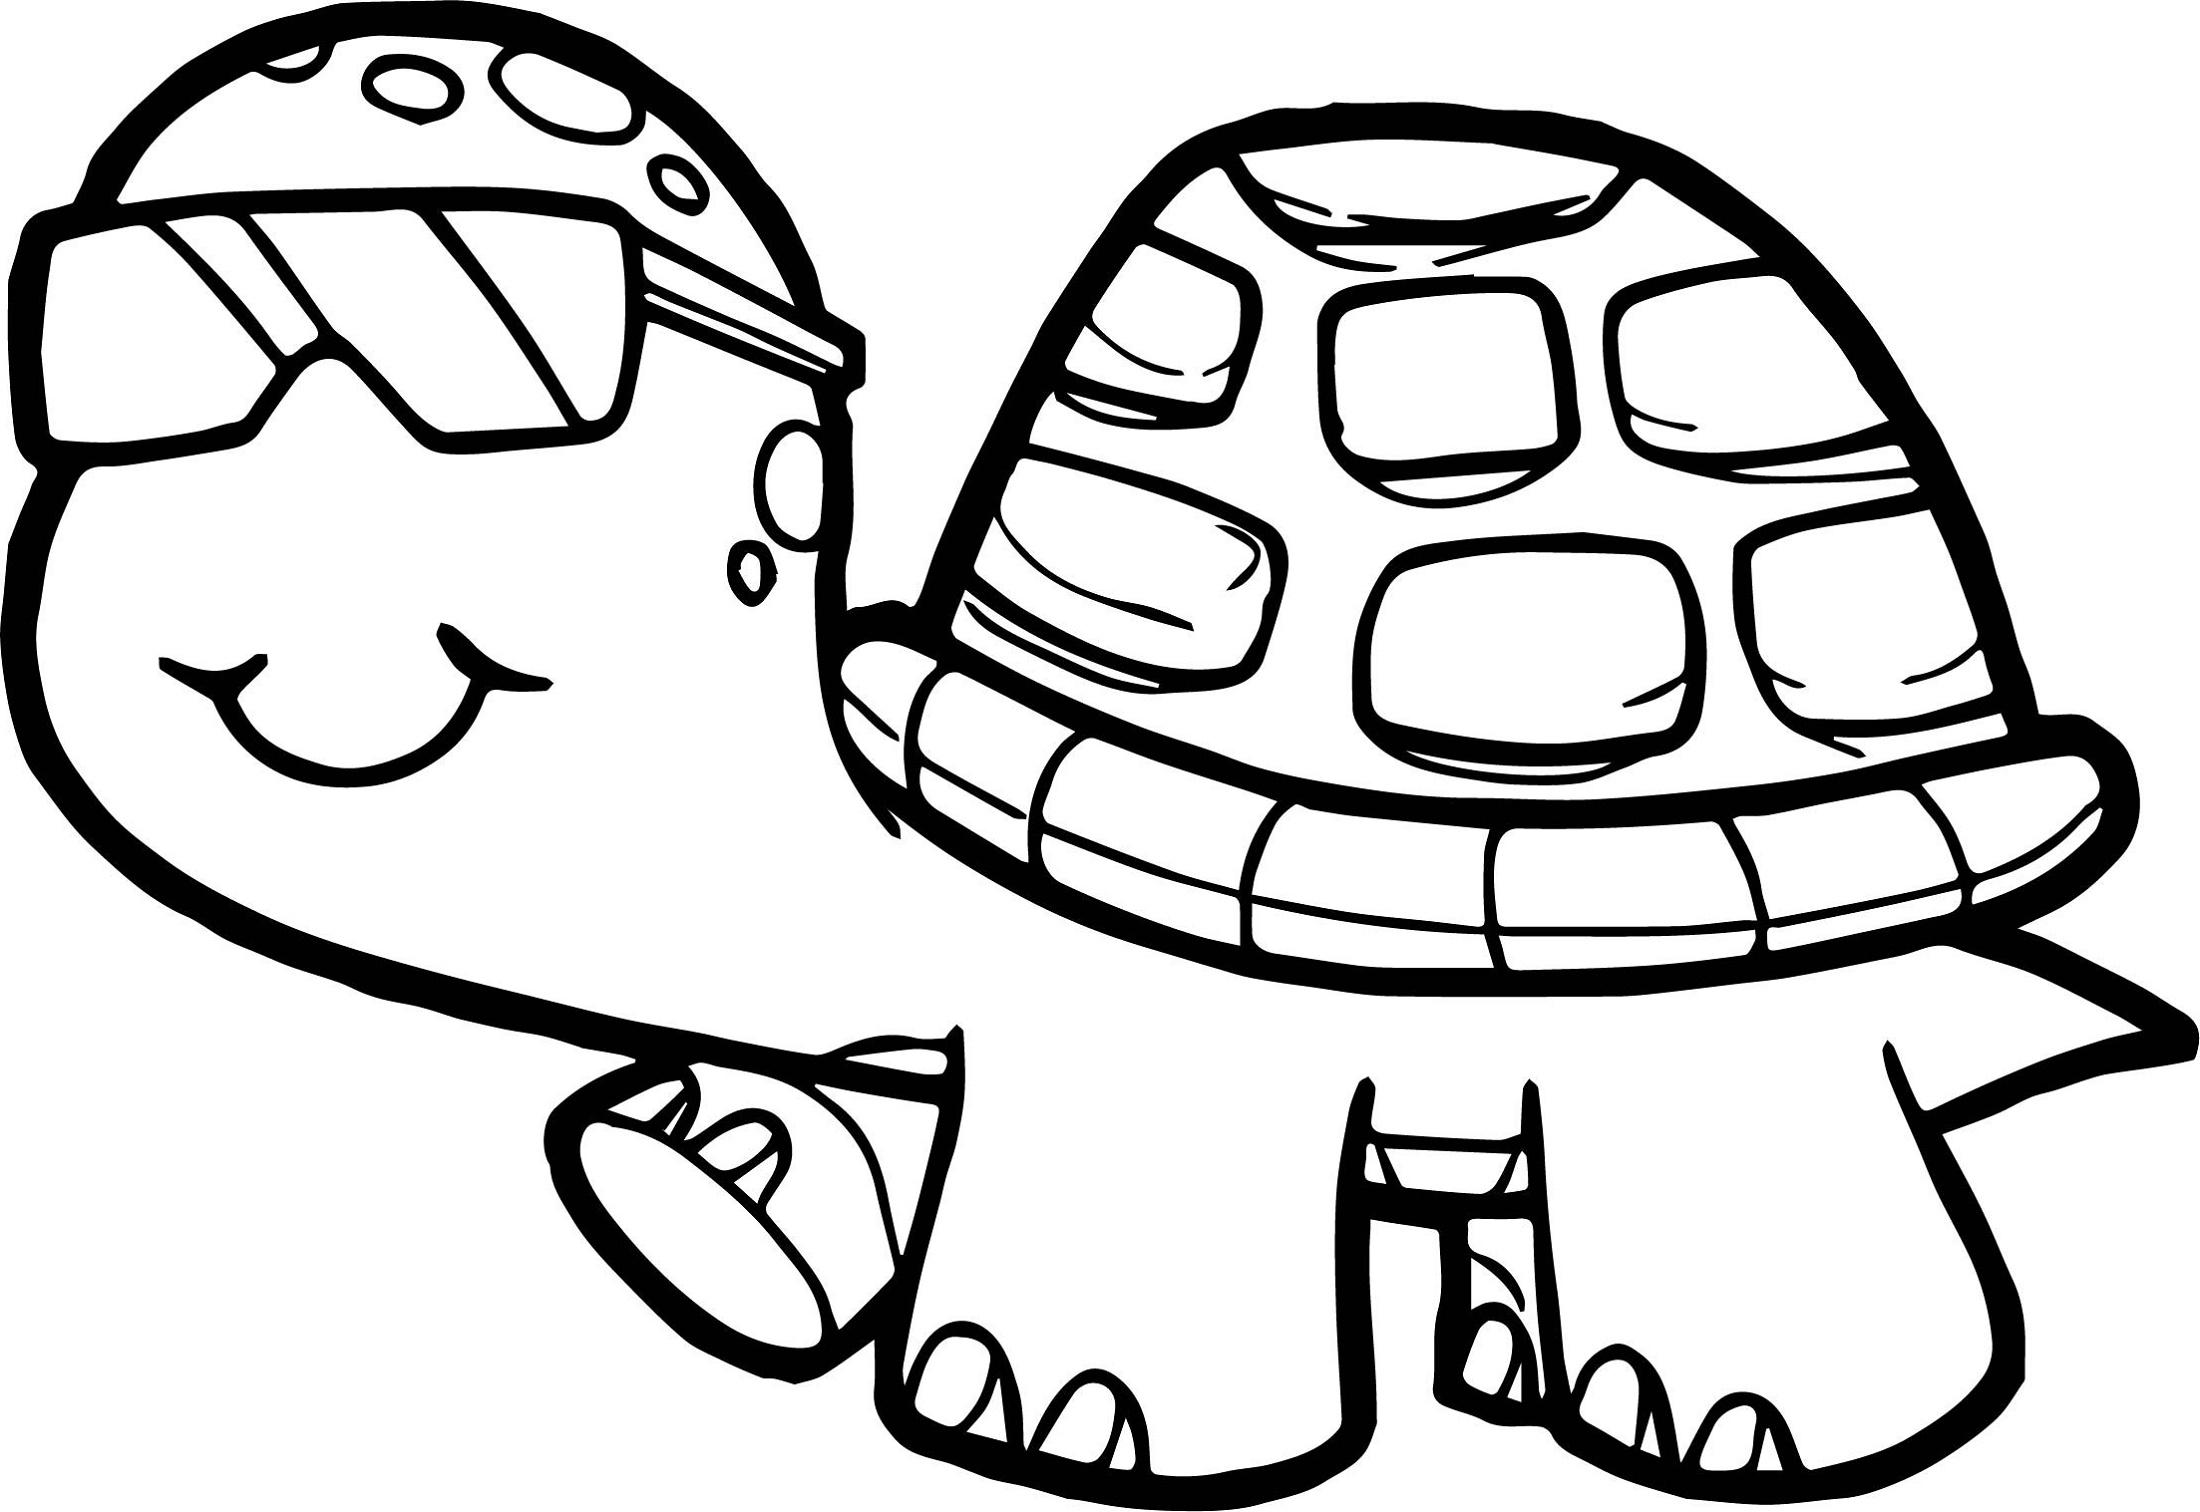 tortoise coloring page incredible turtle turtles adult coloring pages coloring tortoise page